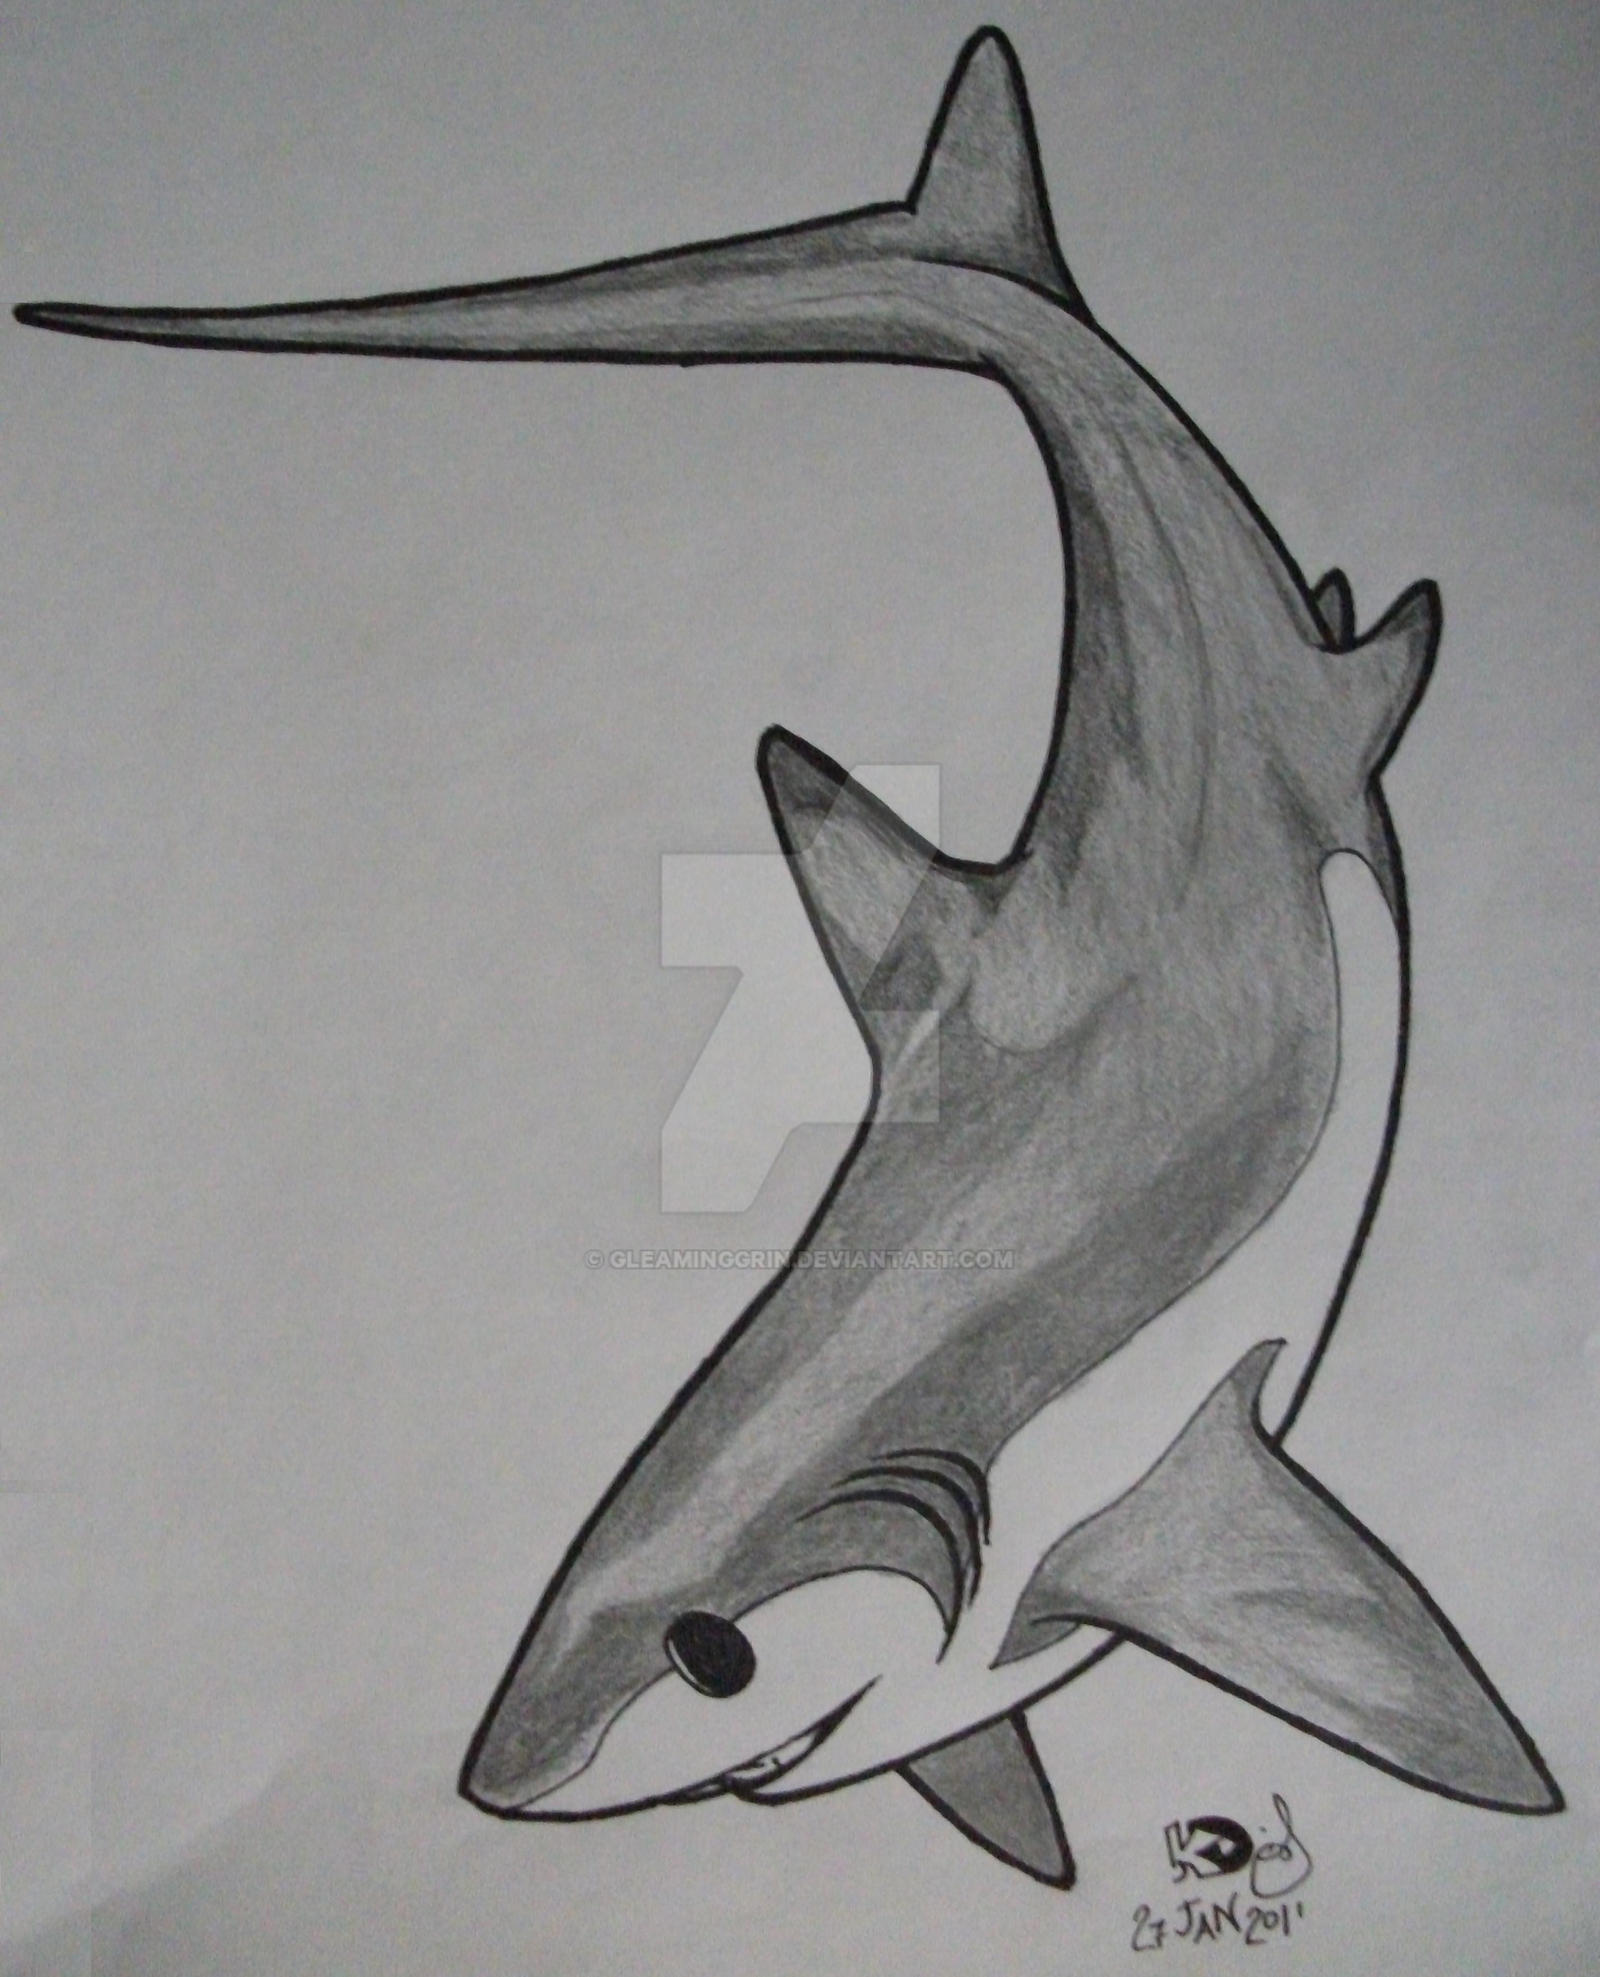 It's just a picture of Unusual Shark Tattoo Drawing